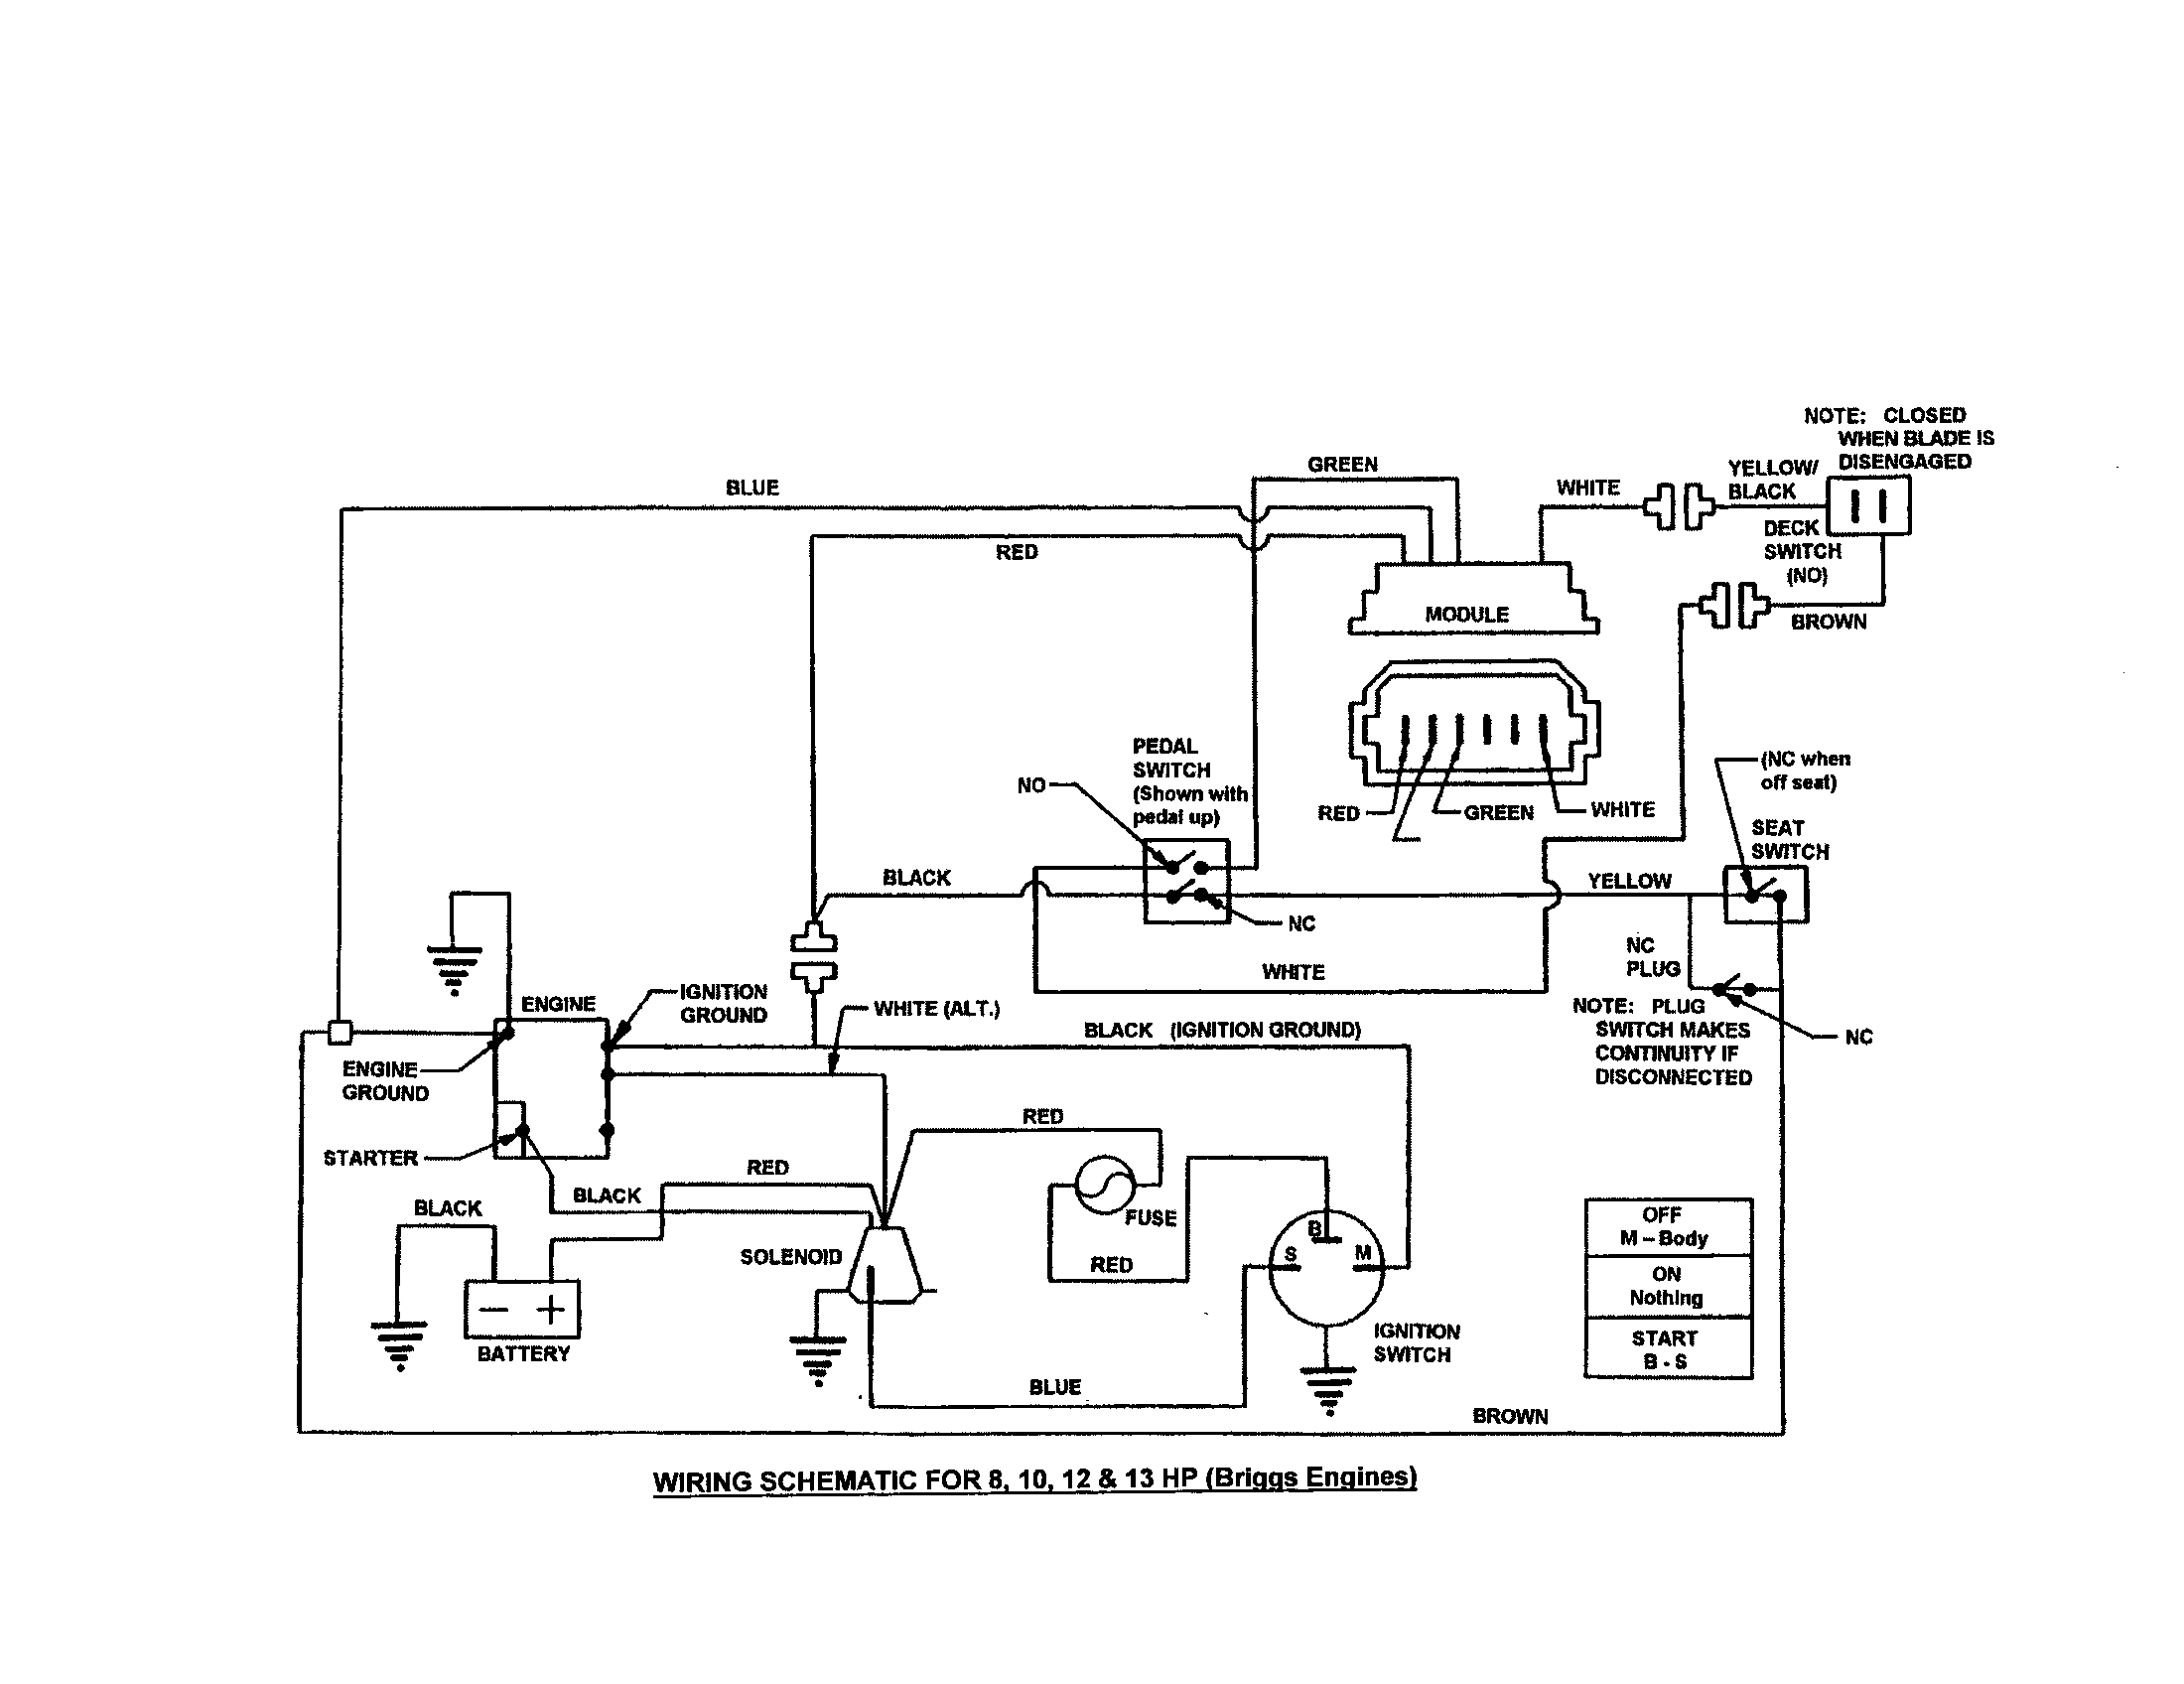 Snapper Model 301016Be Lawn, Riding Mower Rear Engine Genuine Parts - Mtd Riding Lawn Mower Wiring Diagram